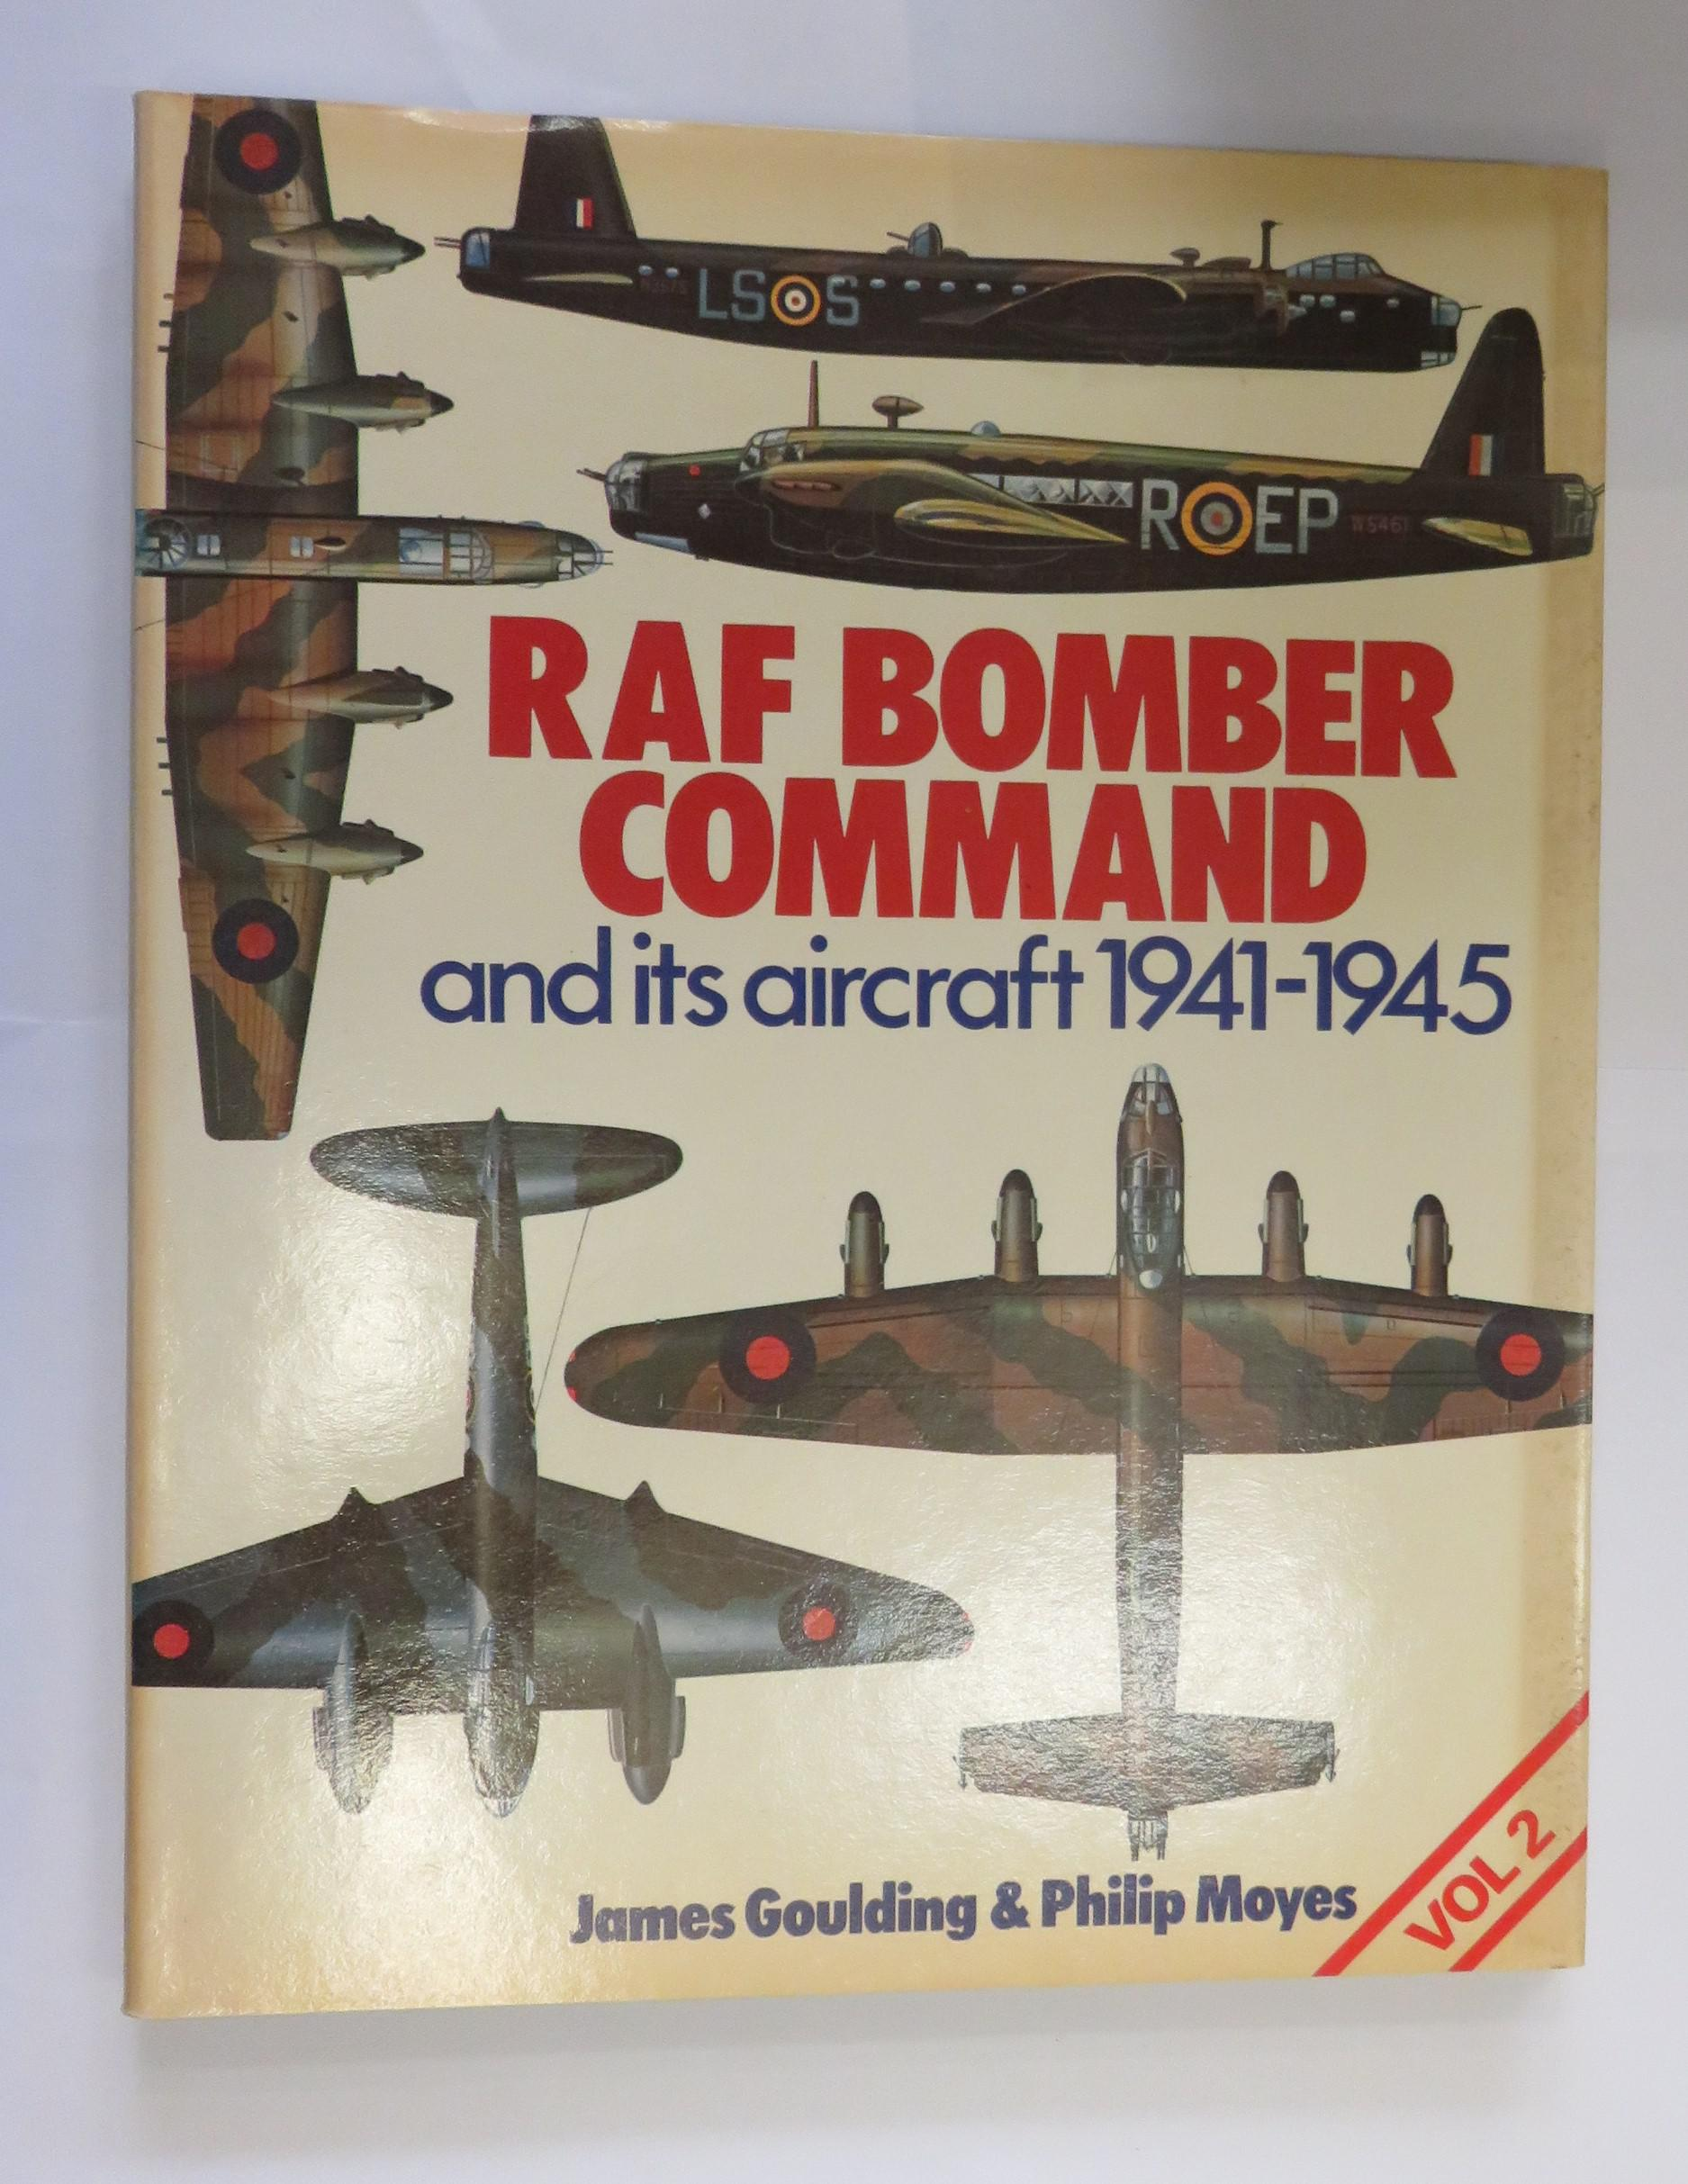 RAF Bomber Command and its aircraft 1941-1945